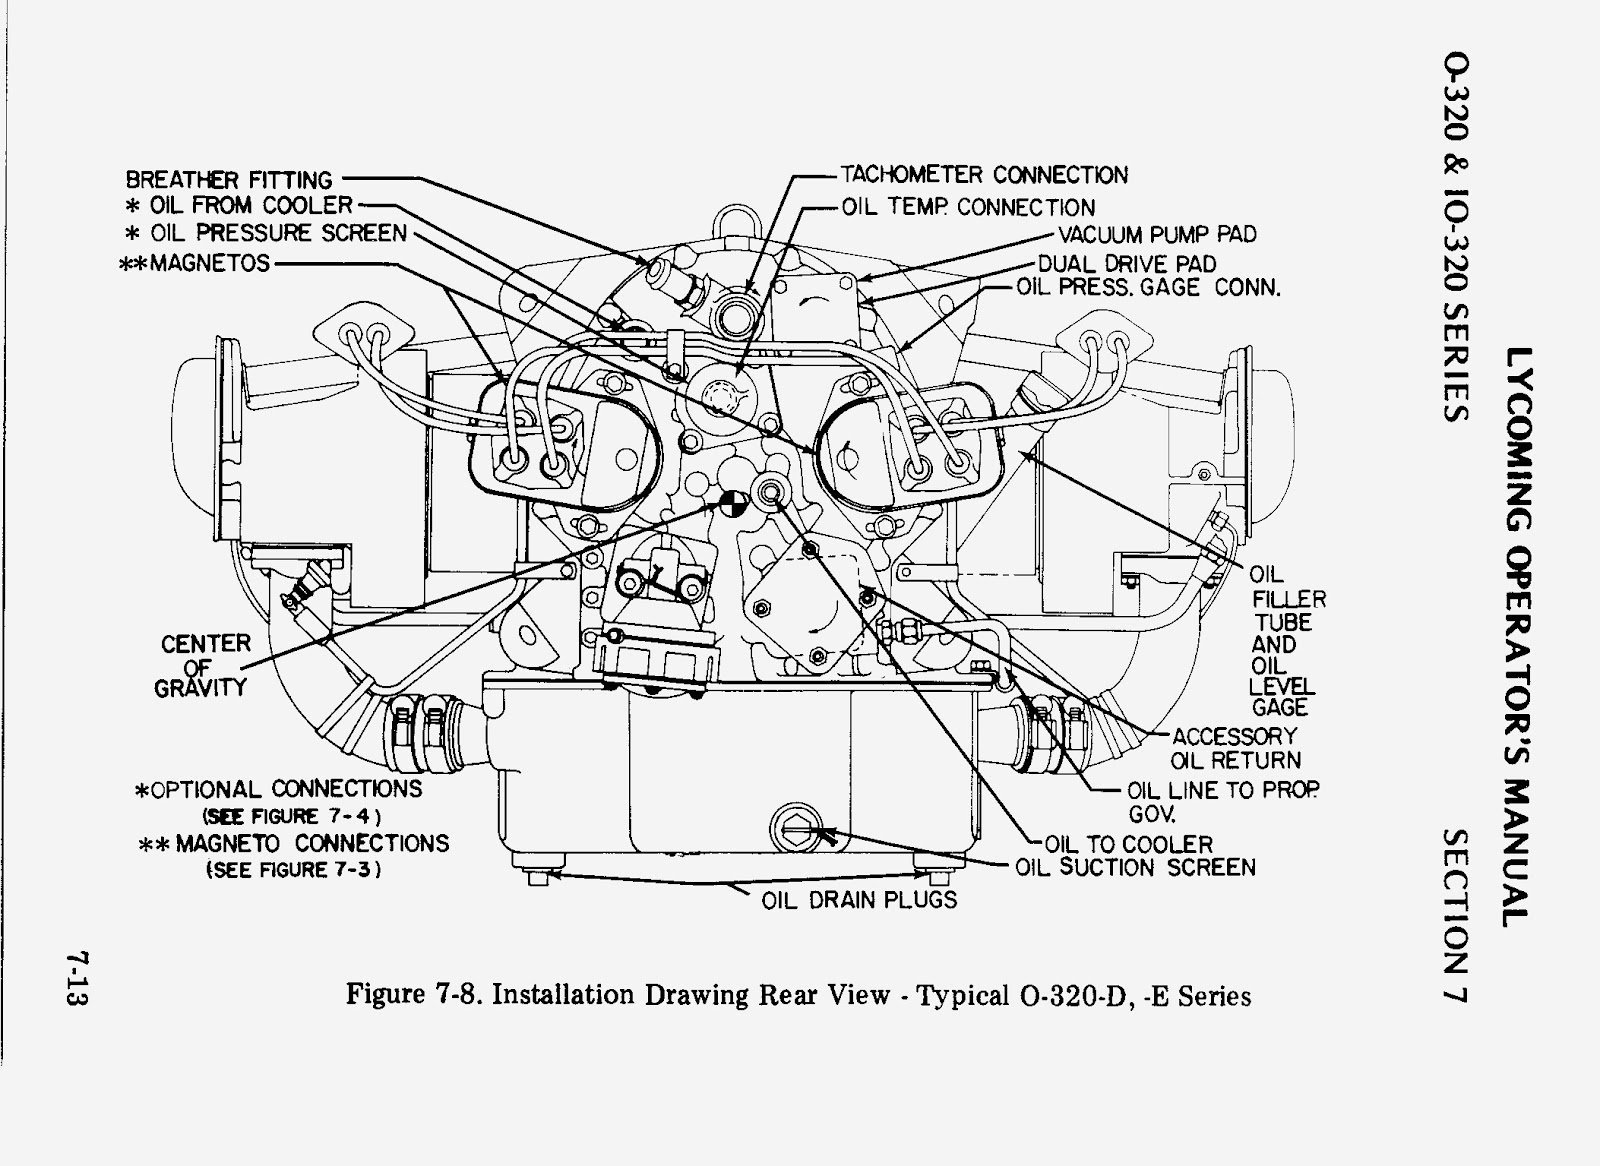 rv - 4 builder: 2012 lycoming oil system diagram